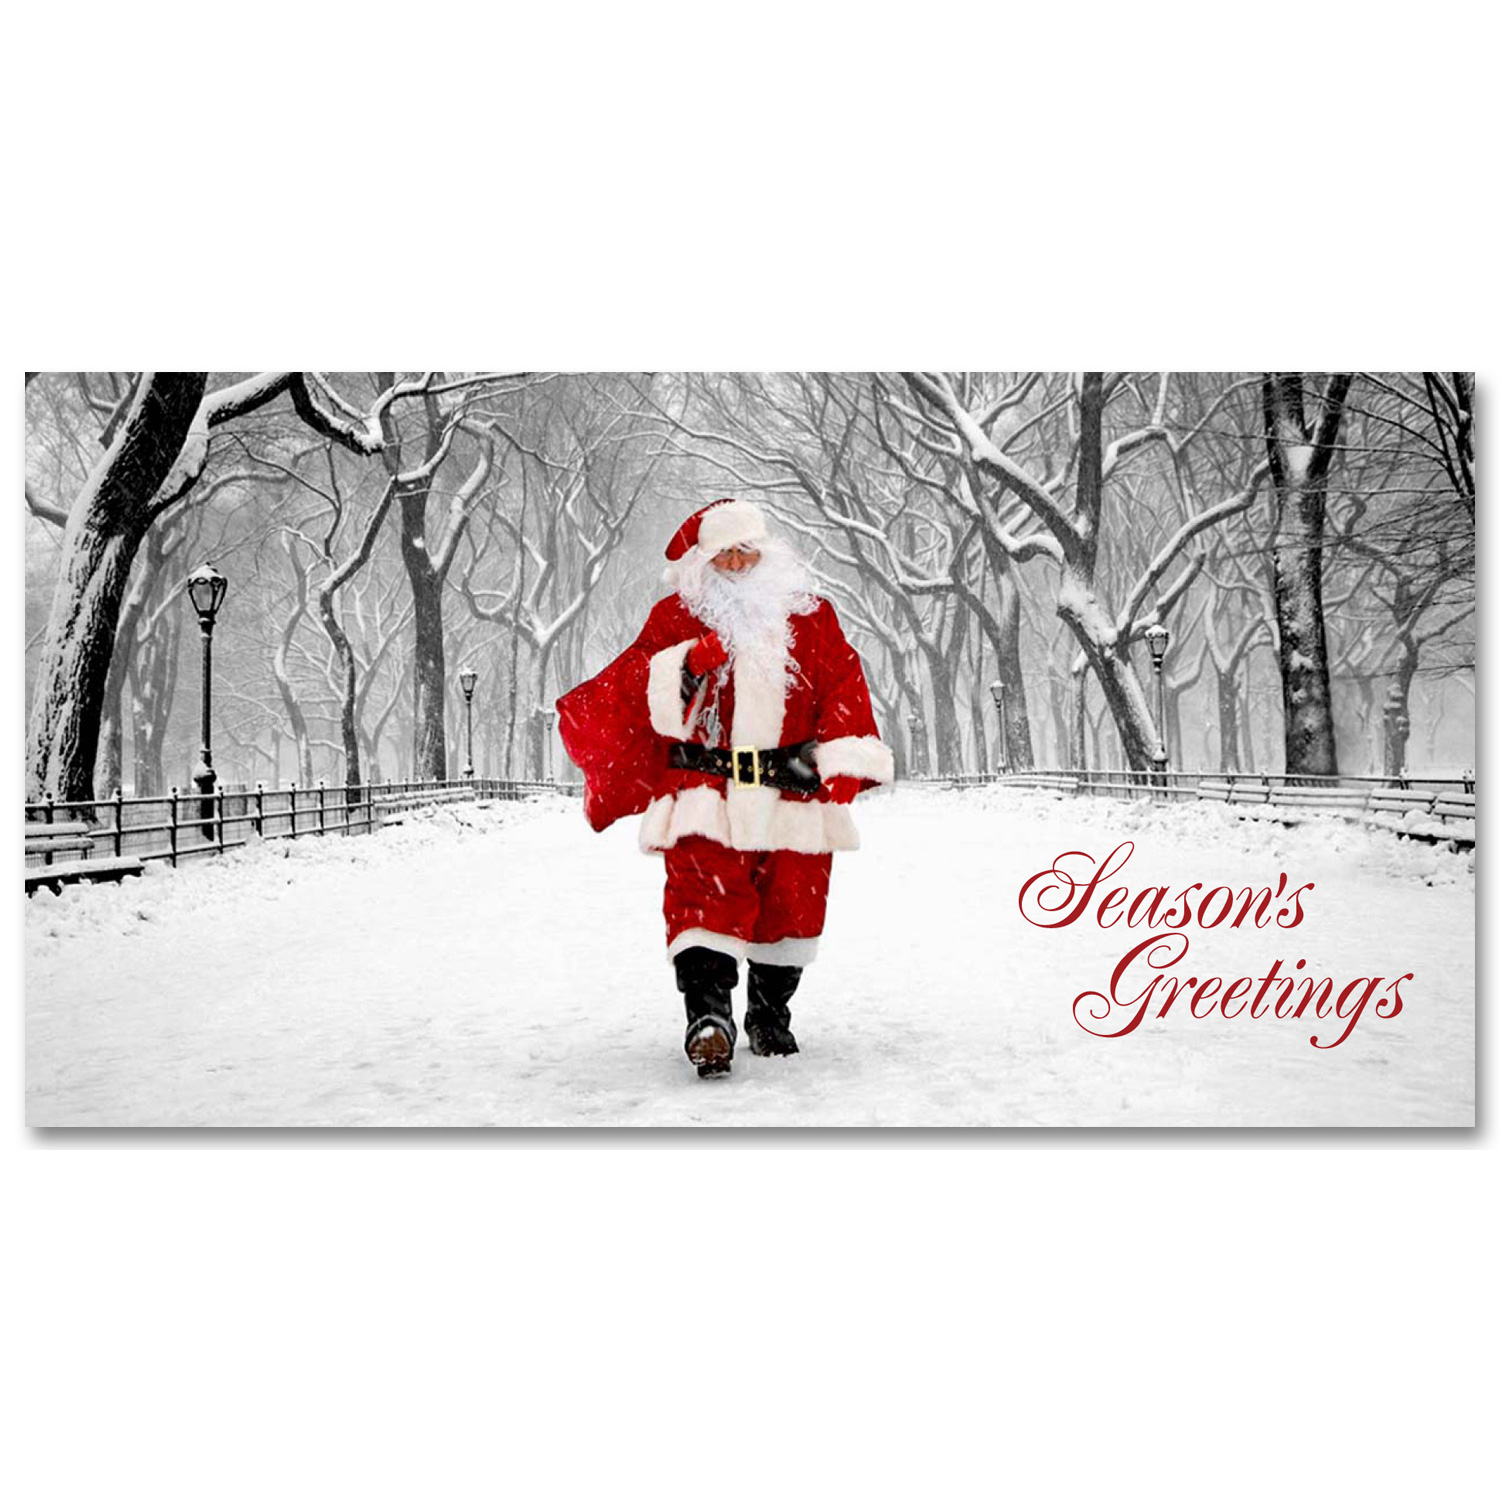 Holidays Money Greeting Cards Holders – Santa on Poet Walk in Central Park – Set of 6 Cards, 6 Envelopes. Holidays in NYC Collection